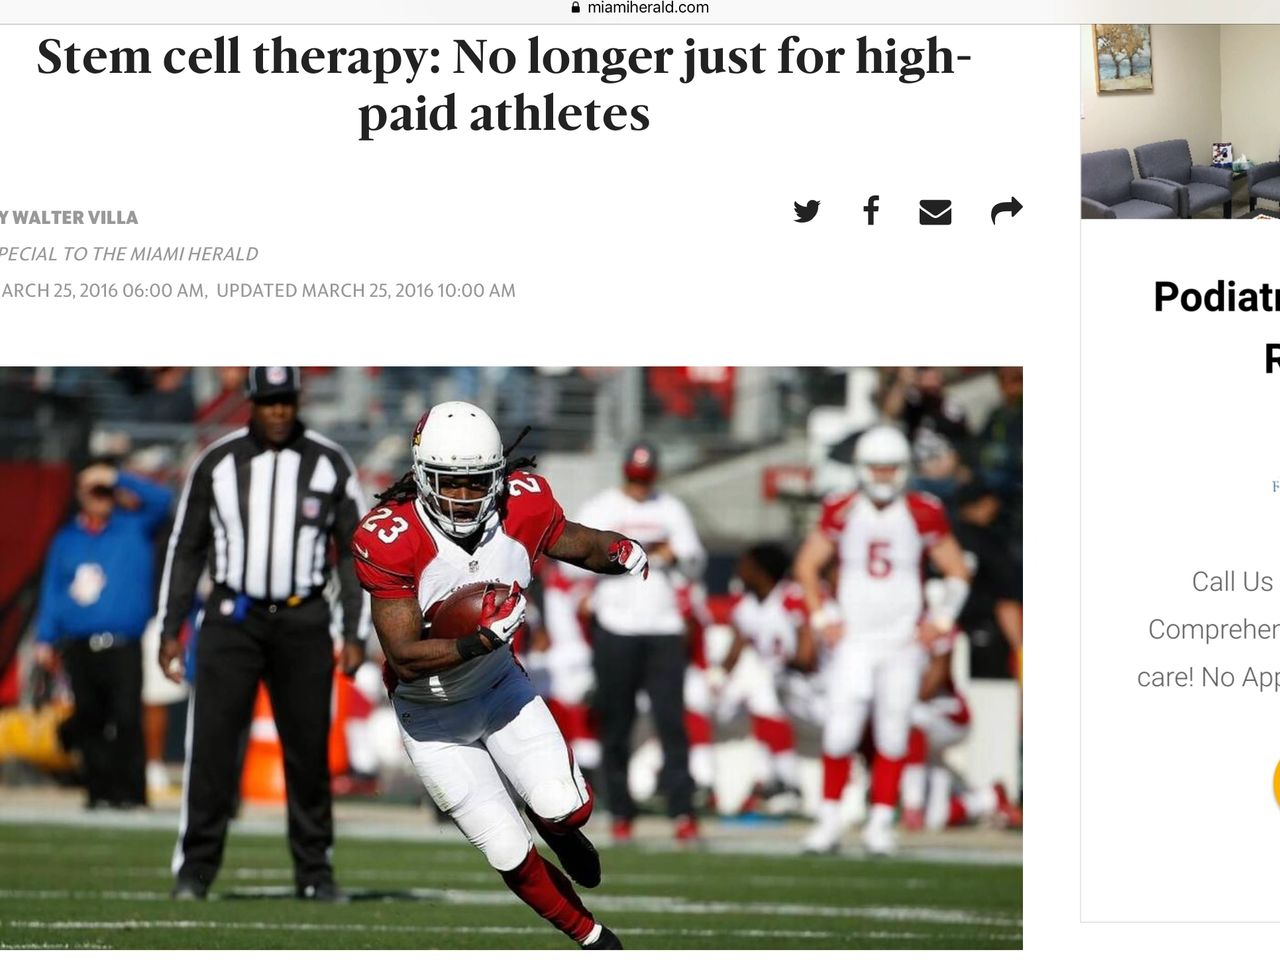 Stem cell therapy: No longer just for high-paid athletes